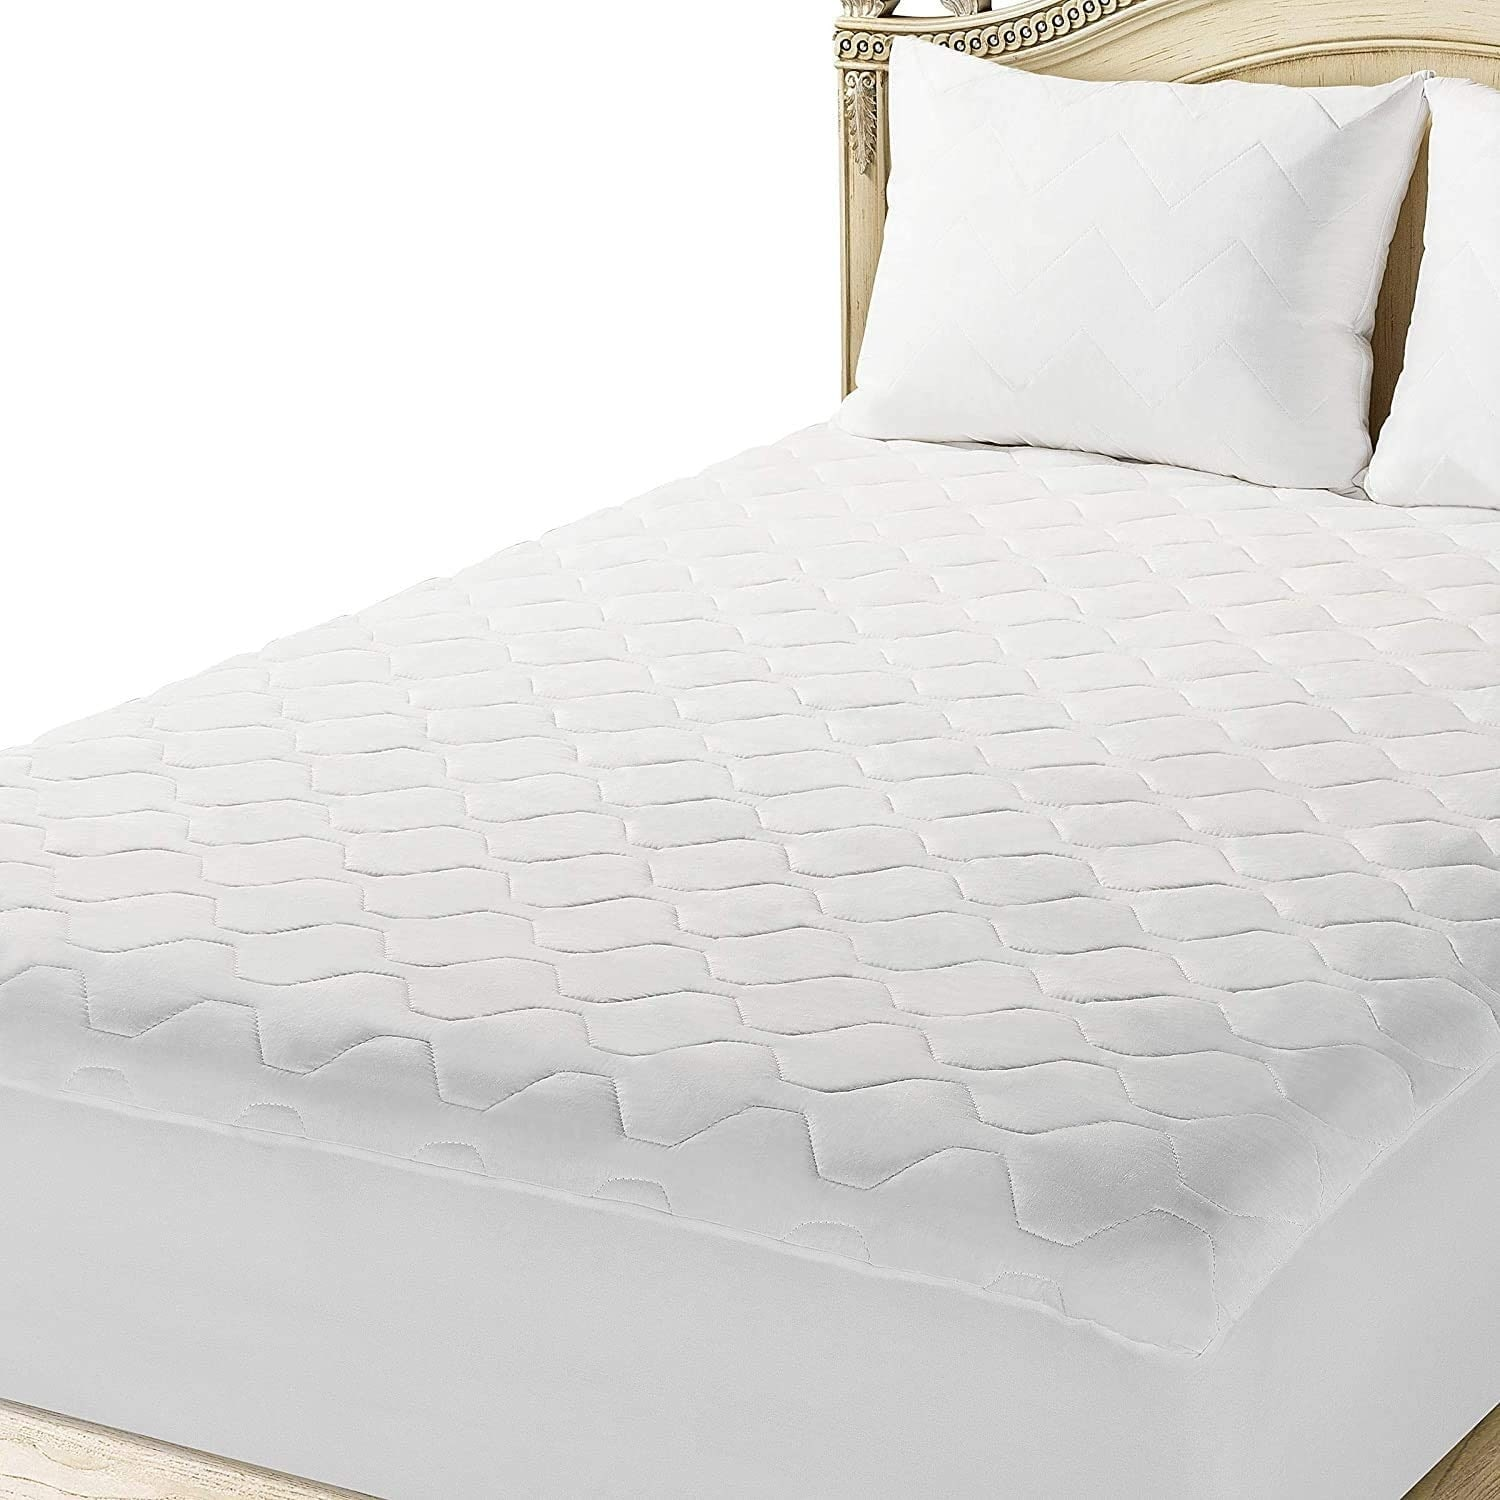 The Grand Rv Short Queen Mattress Pad Fitted Hypoallergenic Camper Queen Mattress Cover 60x75 White Overstock 32030233